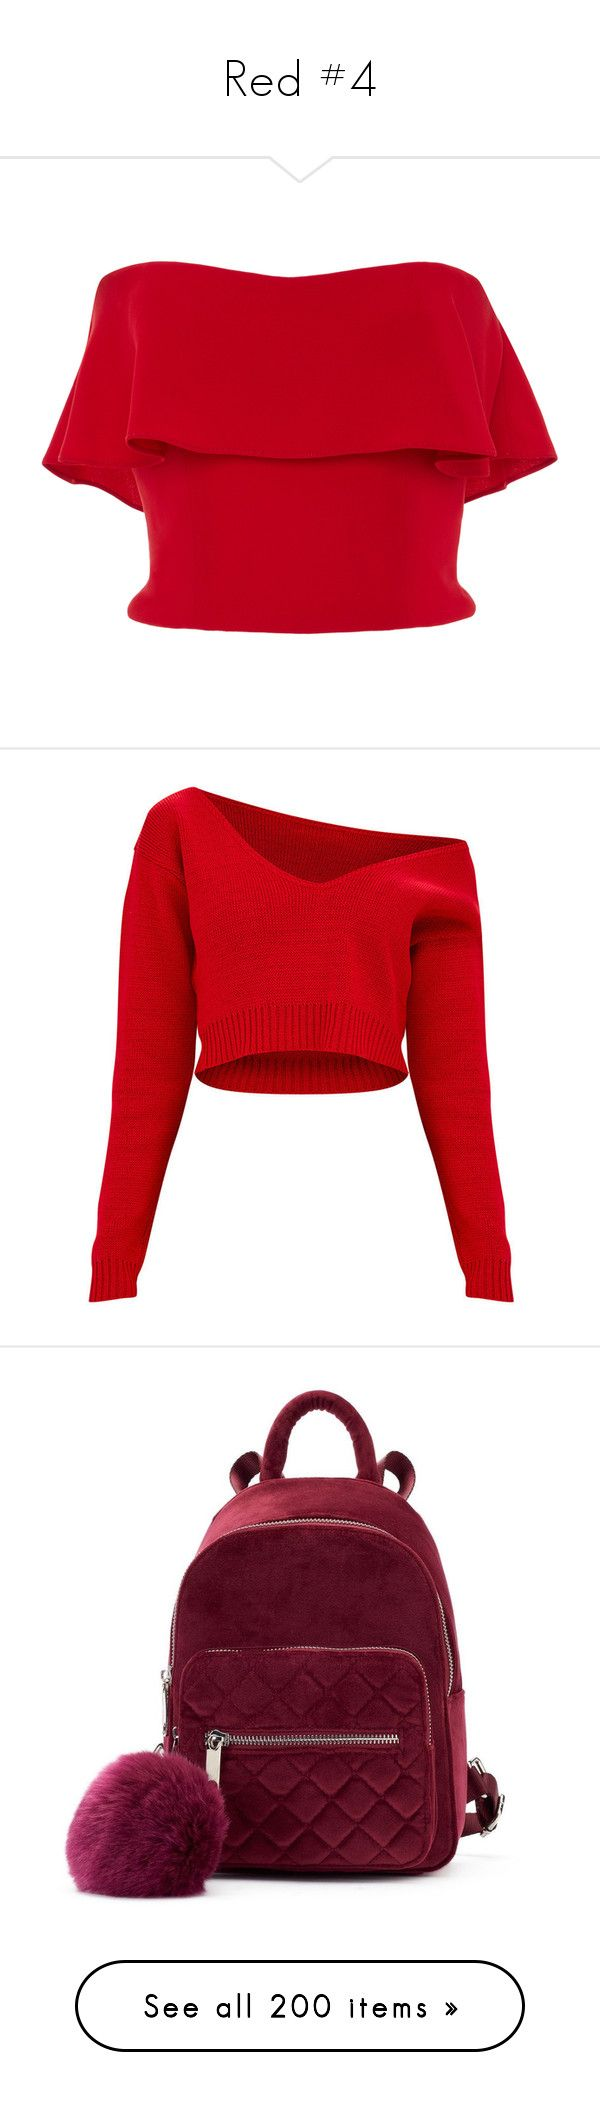 """Red #4"" by ultimateginger ❤ liked on Polyvore featuring tops, shirts, crop tops, red, strapless shirts, red top, red strapless shirt, strapless crop top, red crop top and sweaters"